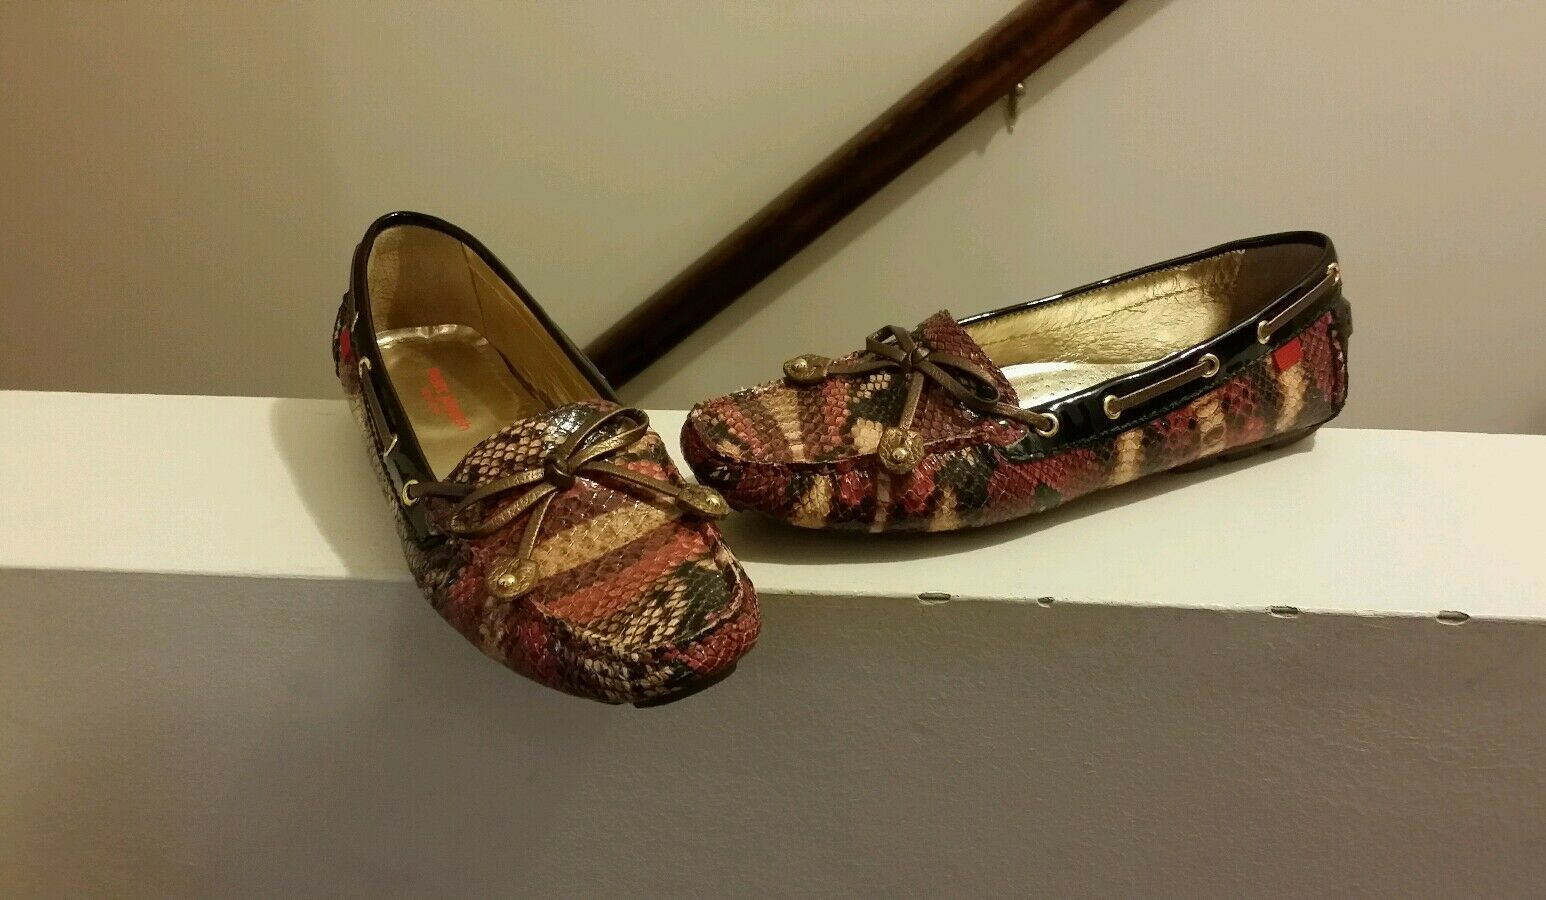 Marc Joseph Cypress Hill Rare Snakeskin Moccasin Size 6.5 shoes